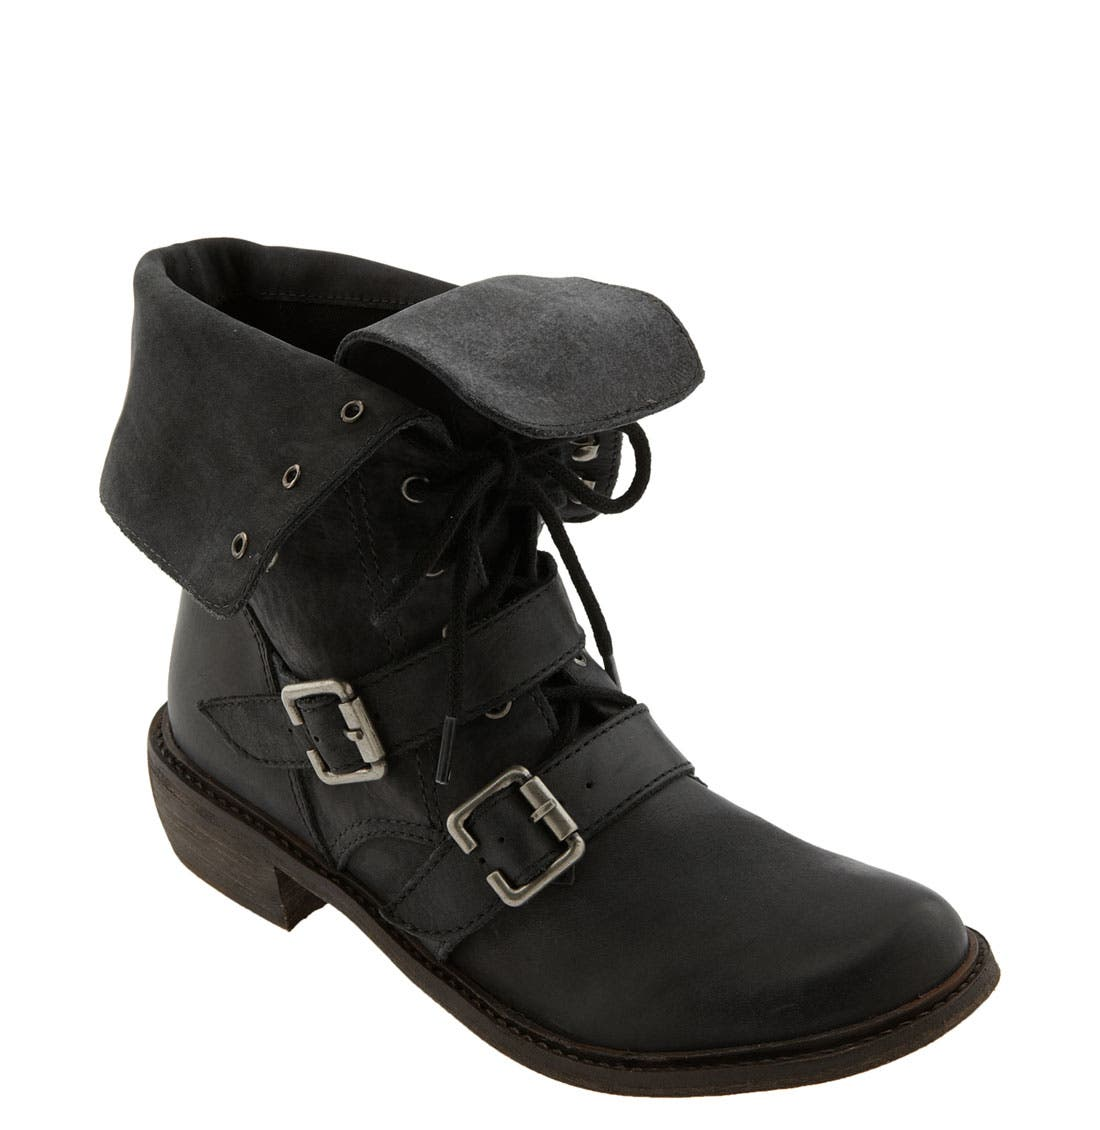 Alternate Image 1 Selected - Trouvé 'Sabrina' Distressed Leather Ankle Boot